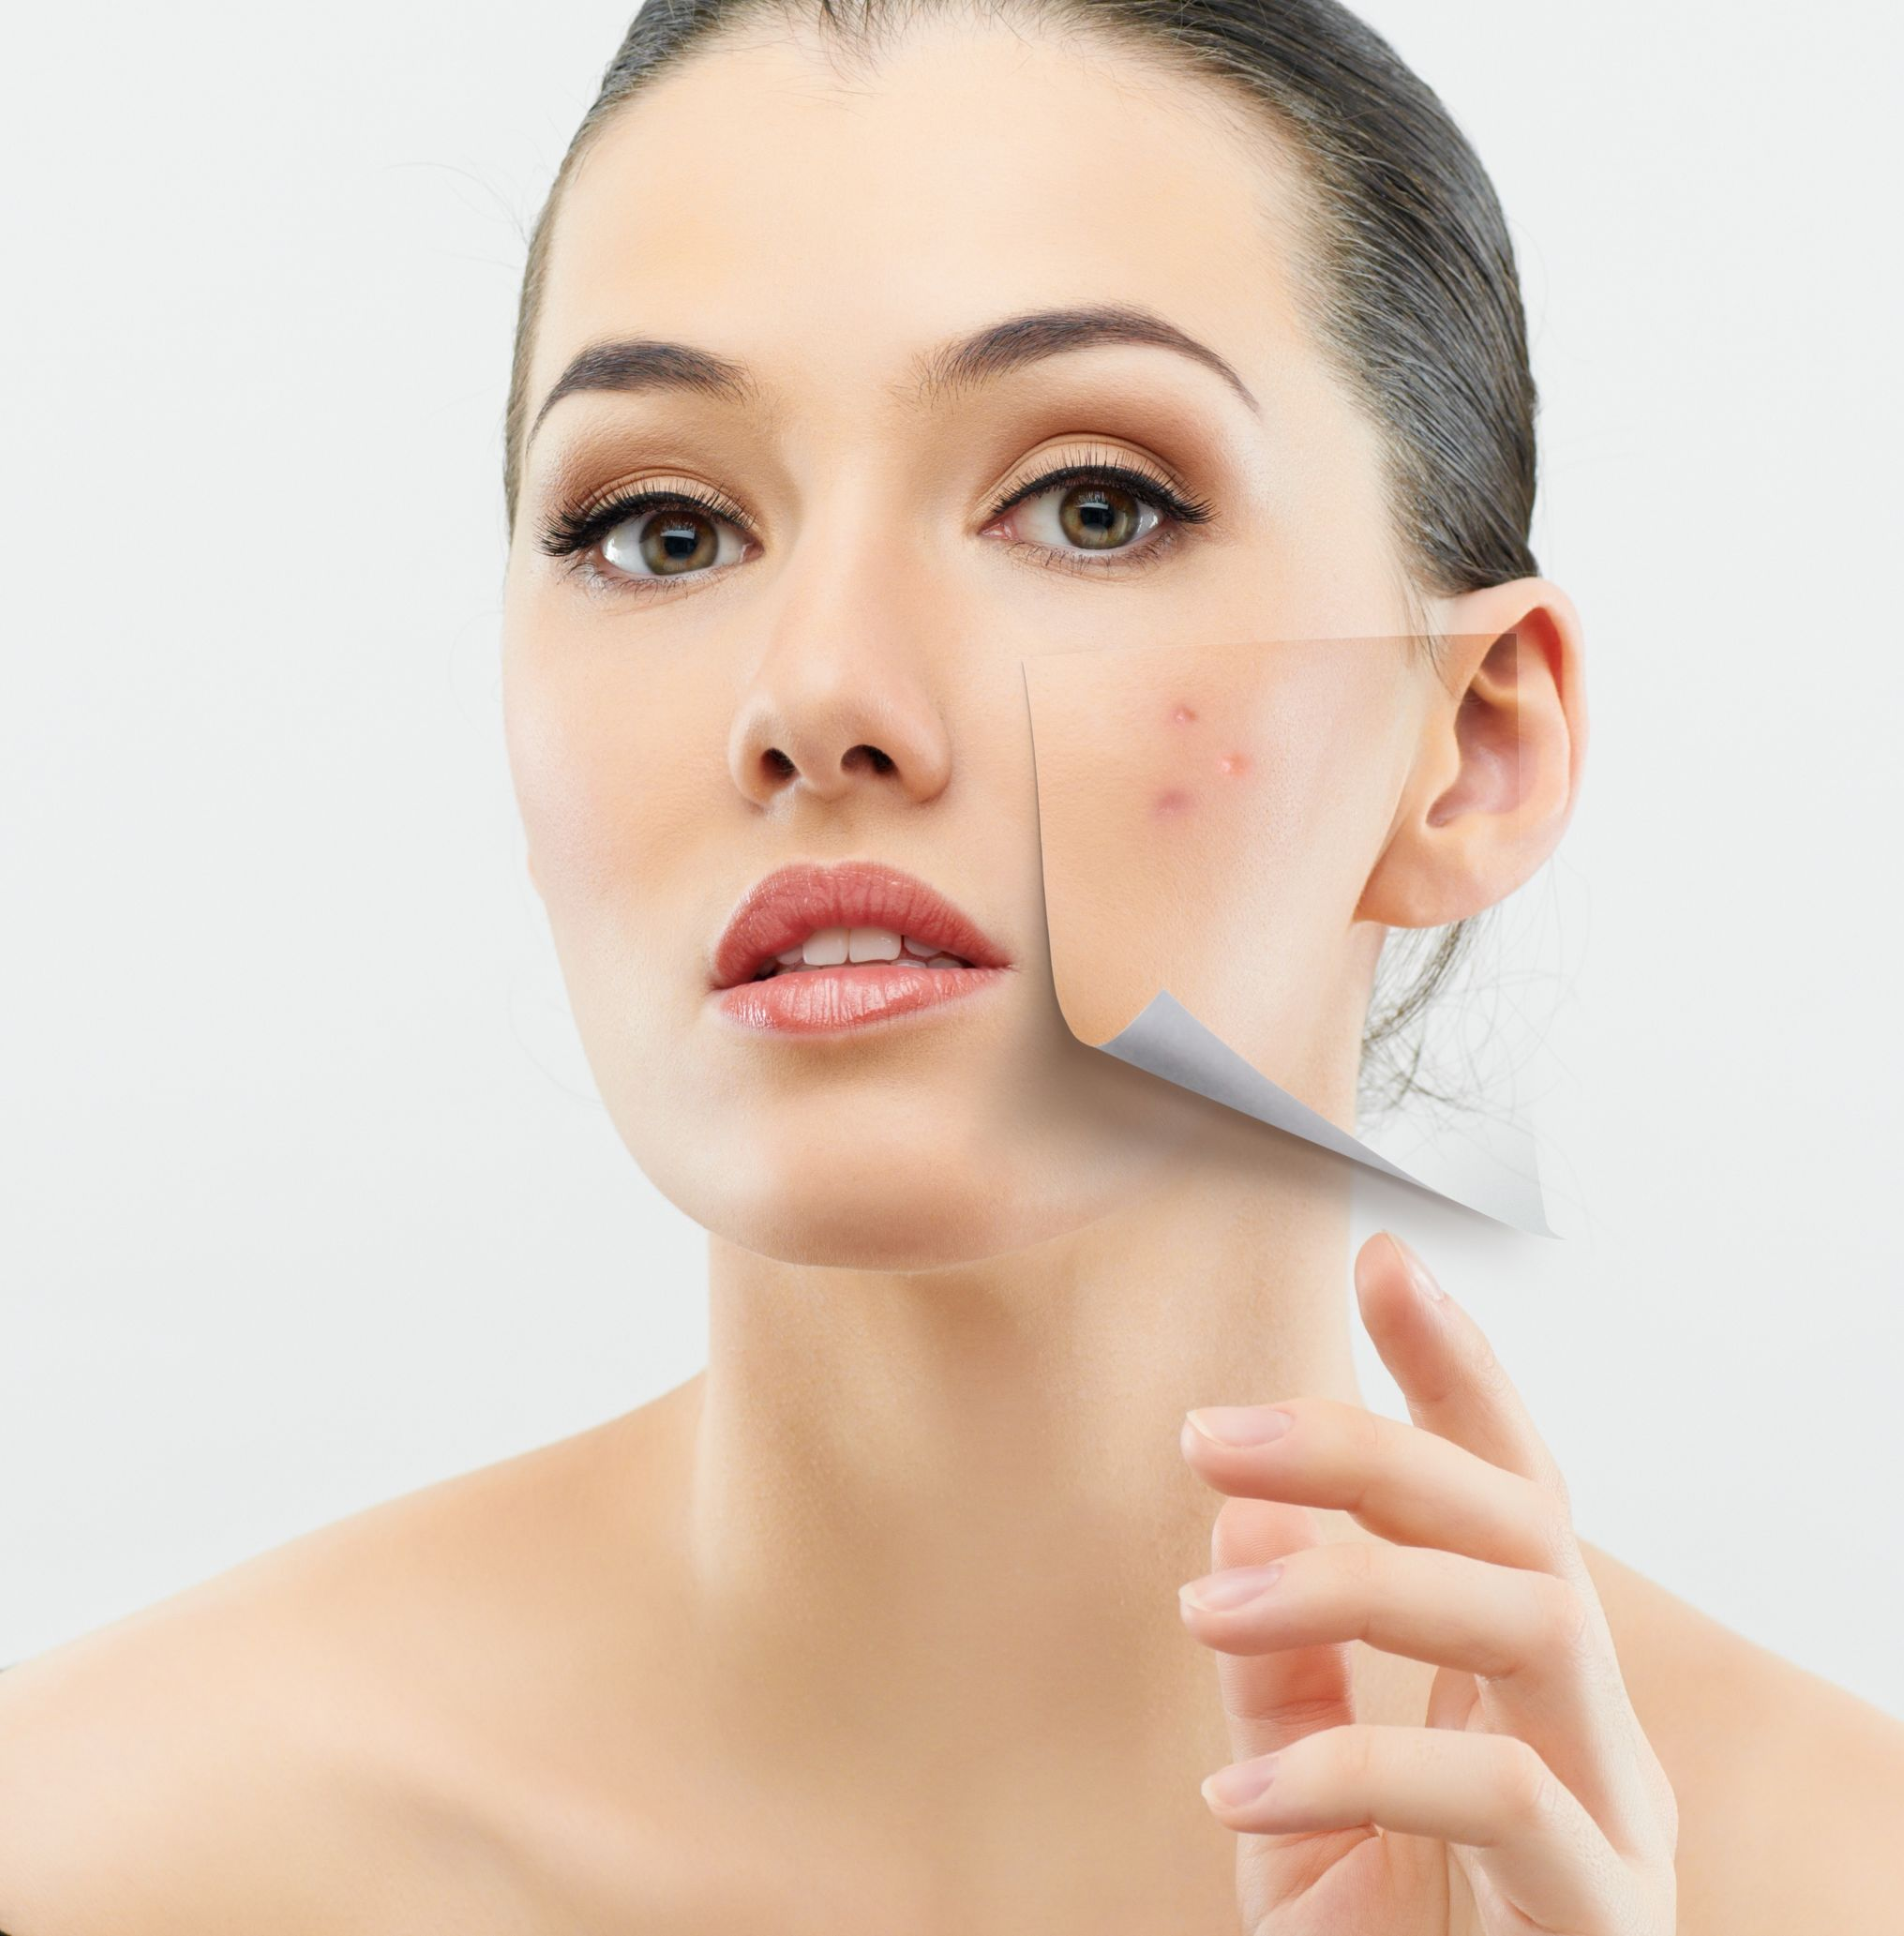 Tackle Skin Complaints